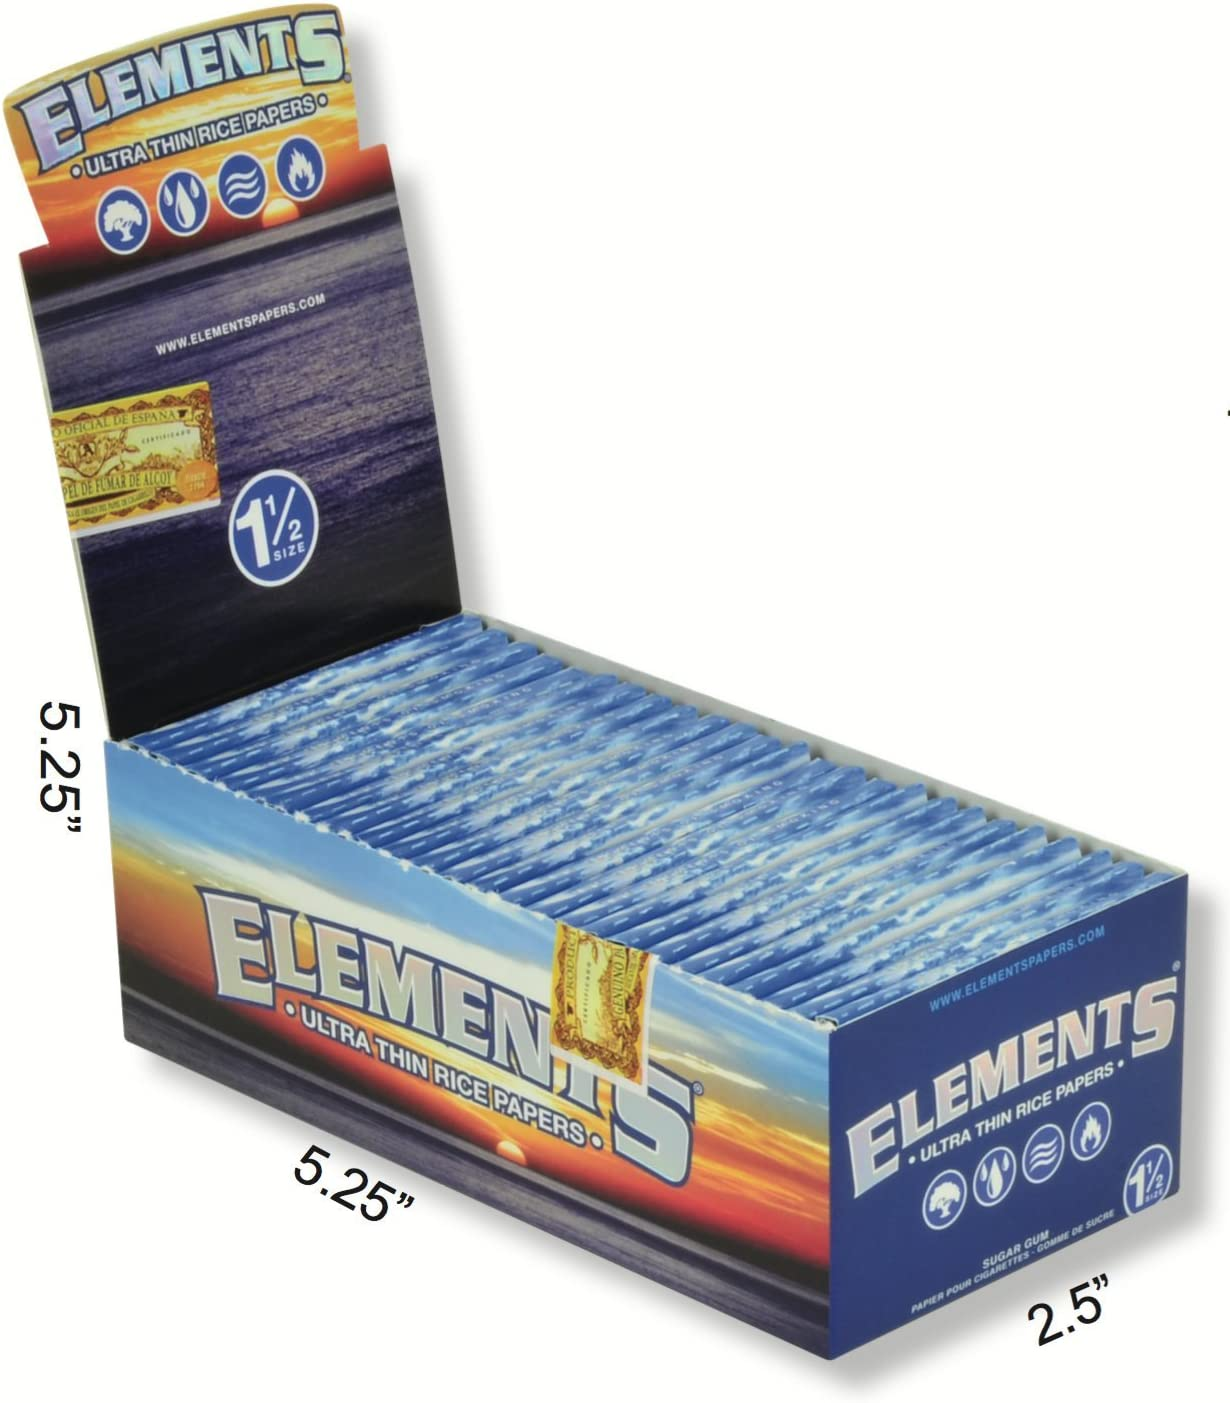 total 825 papers x ELEMENTS Ultra Thin Rice paper size 1 1//2 25 packs 1 box